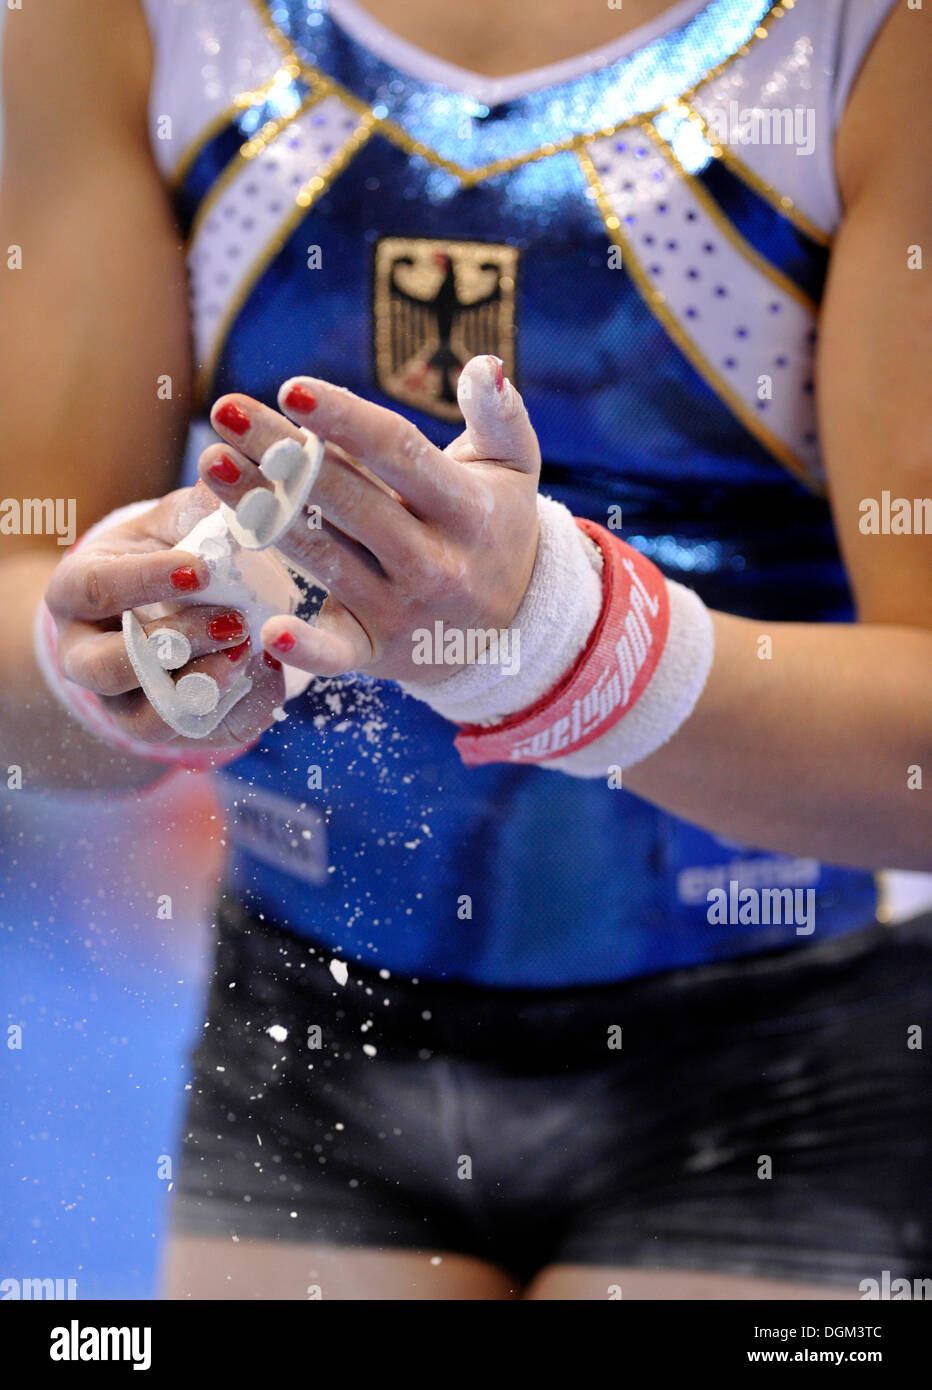 Elisabeth Seitz, Germany, rubbing magnesia on her hands, EnBW Gymnastics World Cup from 12 - 14.11.2010, 28th DTB Stock Photo